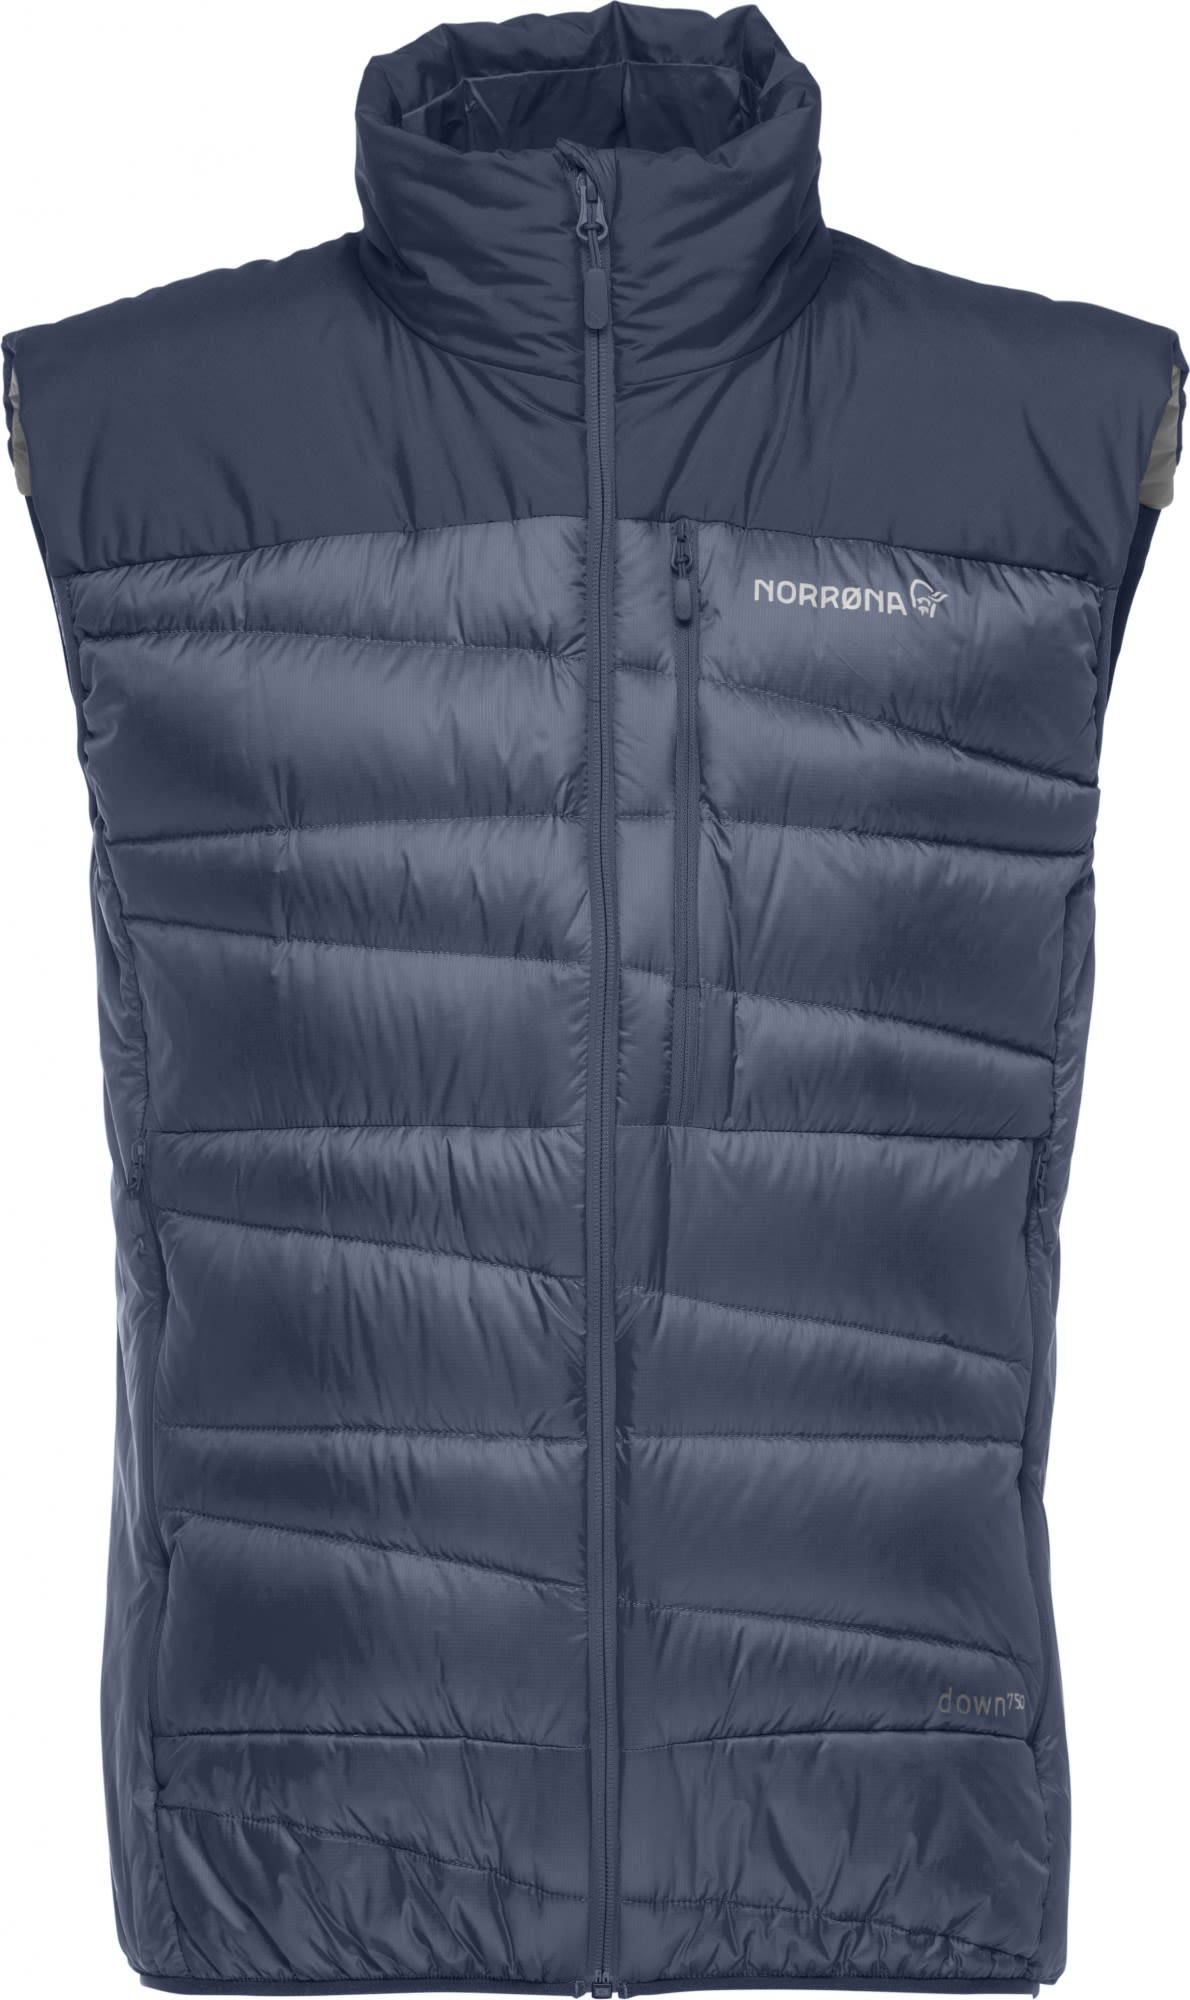 Norrona Falketind Down750 Vest Blau, Male Daunen Isolationsweste, XL